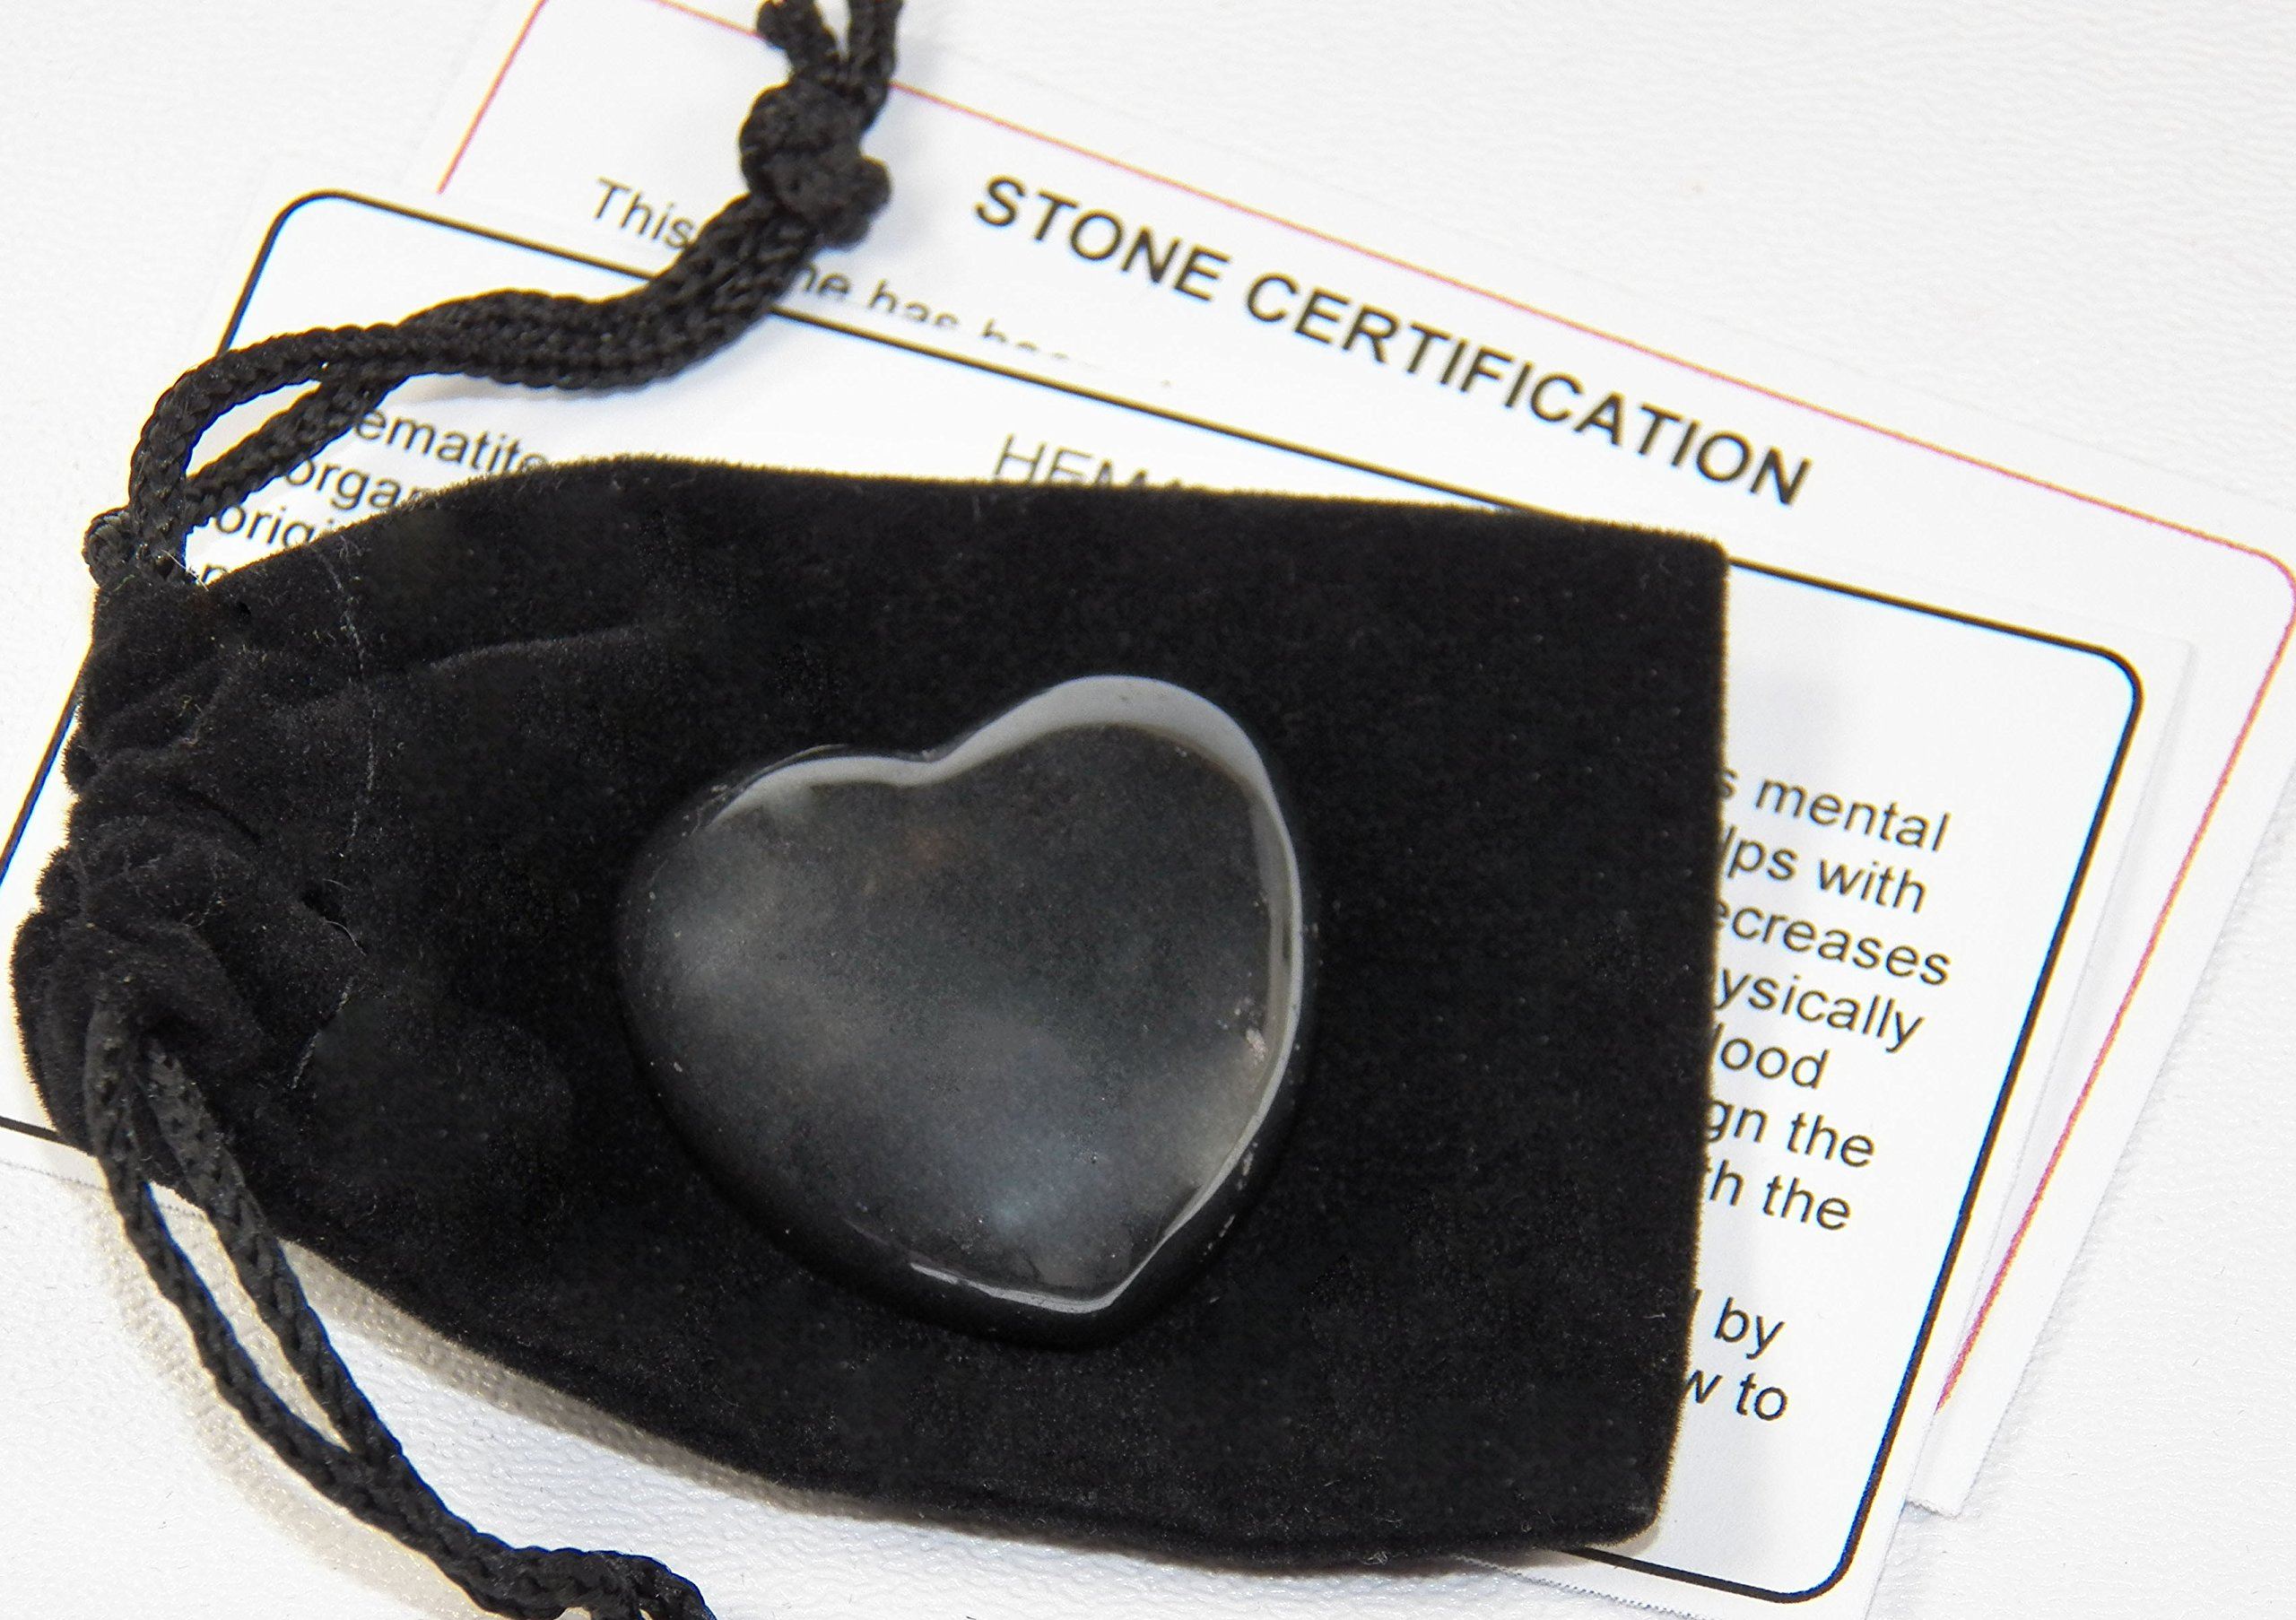 Fundamental Rockhound Products: Hematite Pocket Heart Gemstone Crystal with Carrying Pouch, info Card, Stone Certification, Tumbled Stone